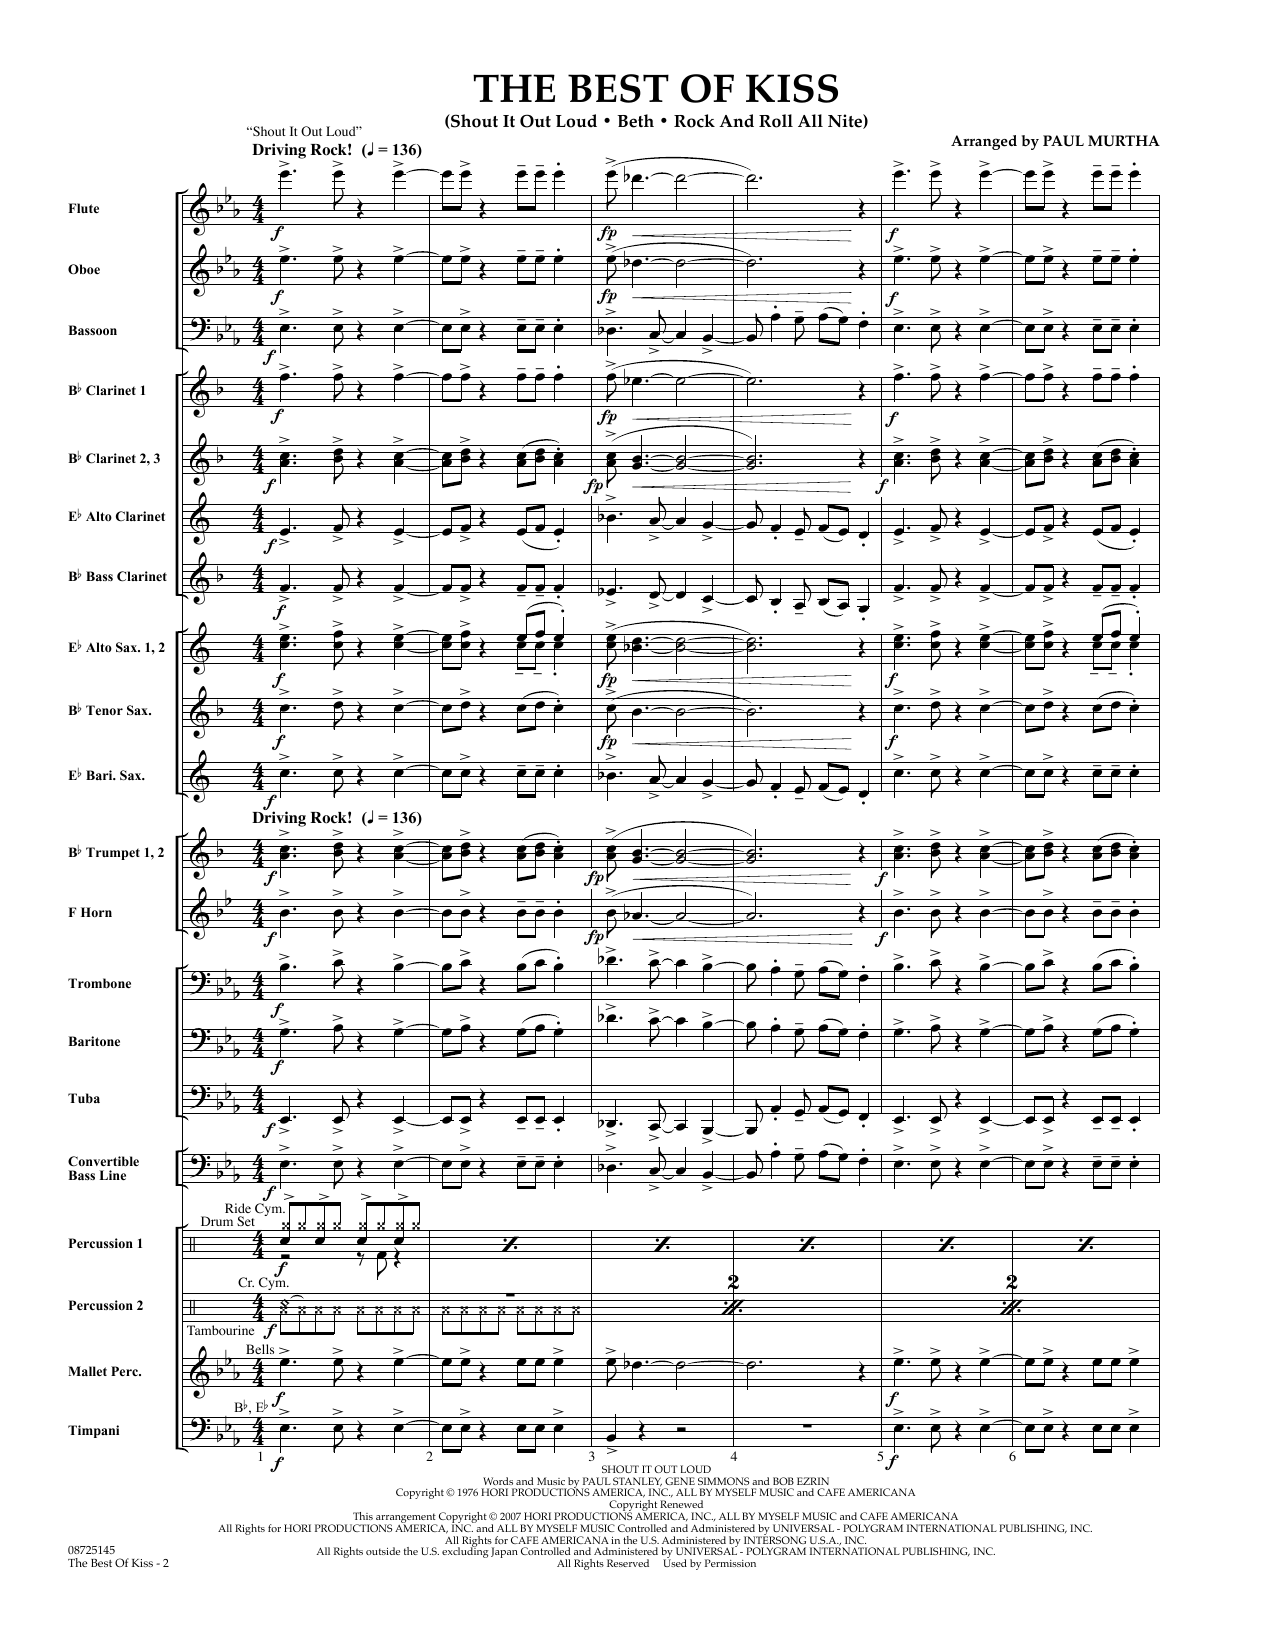 The Best of Kiss (COMPLETE) sheet music for concert band by Paul Murtha. Score Image Preview.